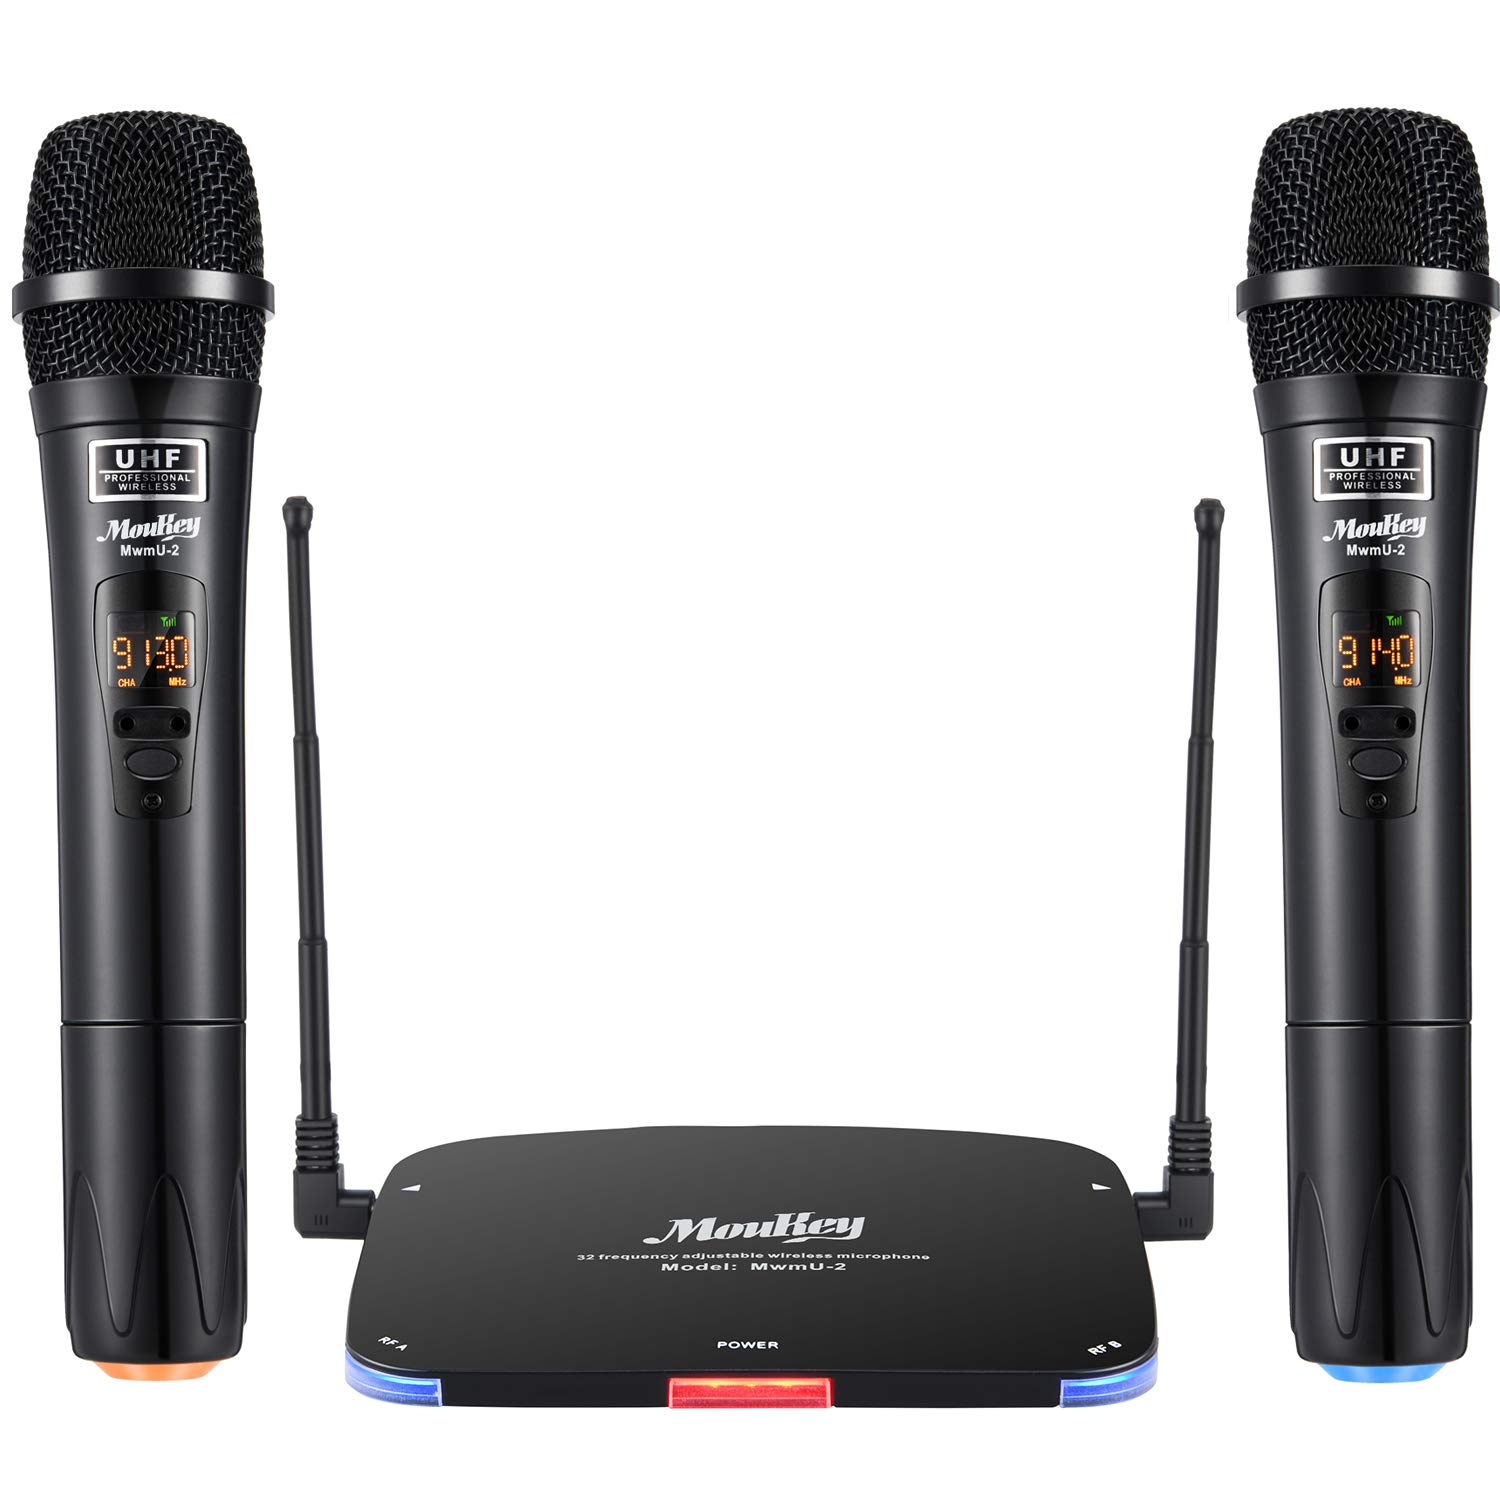 Moukey UHF Wireless Microphone System, Dual Channel Karaoke Professional Handheld Dynamic Rechargeable Cordless Mic Set, 262ft Range for Home Singing Machine DJ Church PA Speaker by Moukey